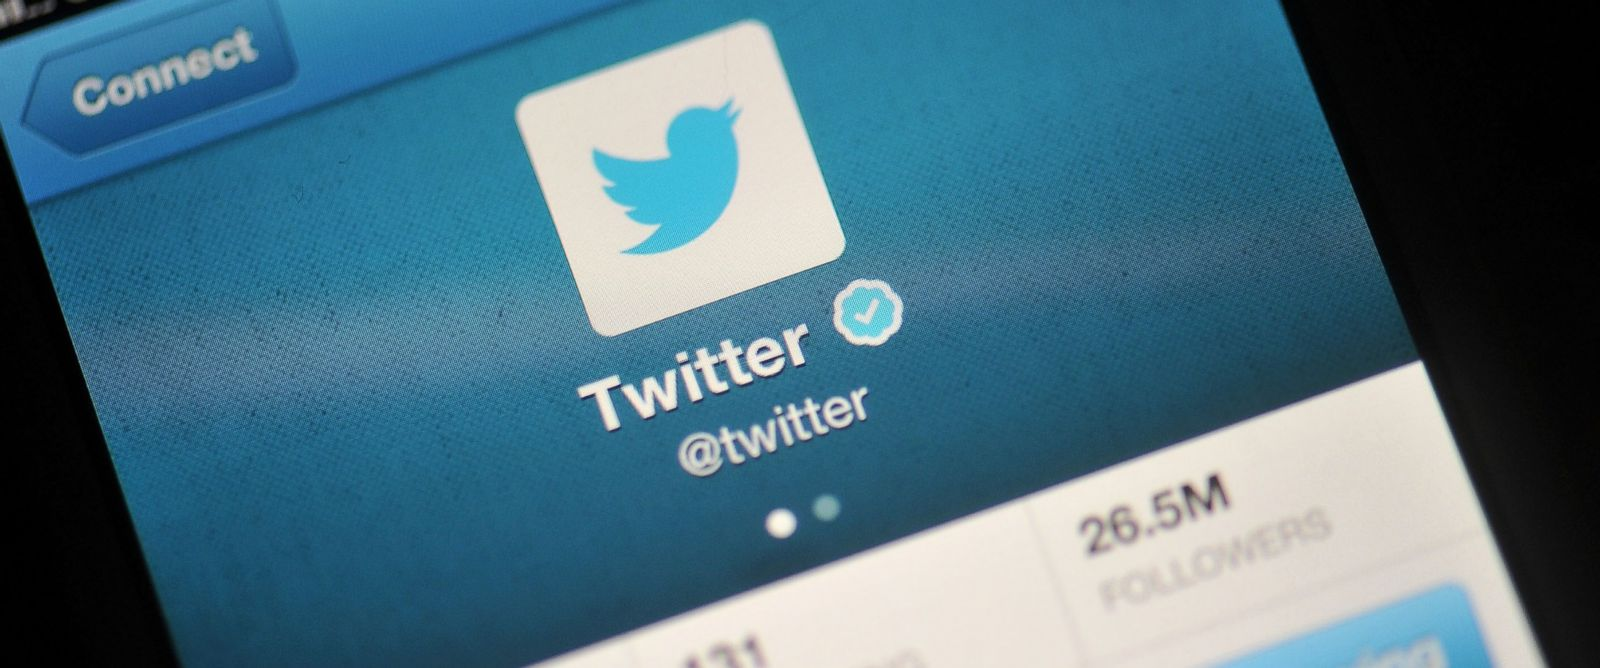 PHOTO: The Twitter logo is displayed on a mobile device on Nov. 7, 2013 in London.